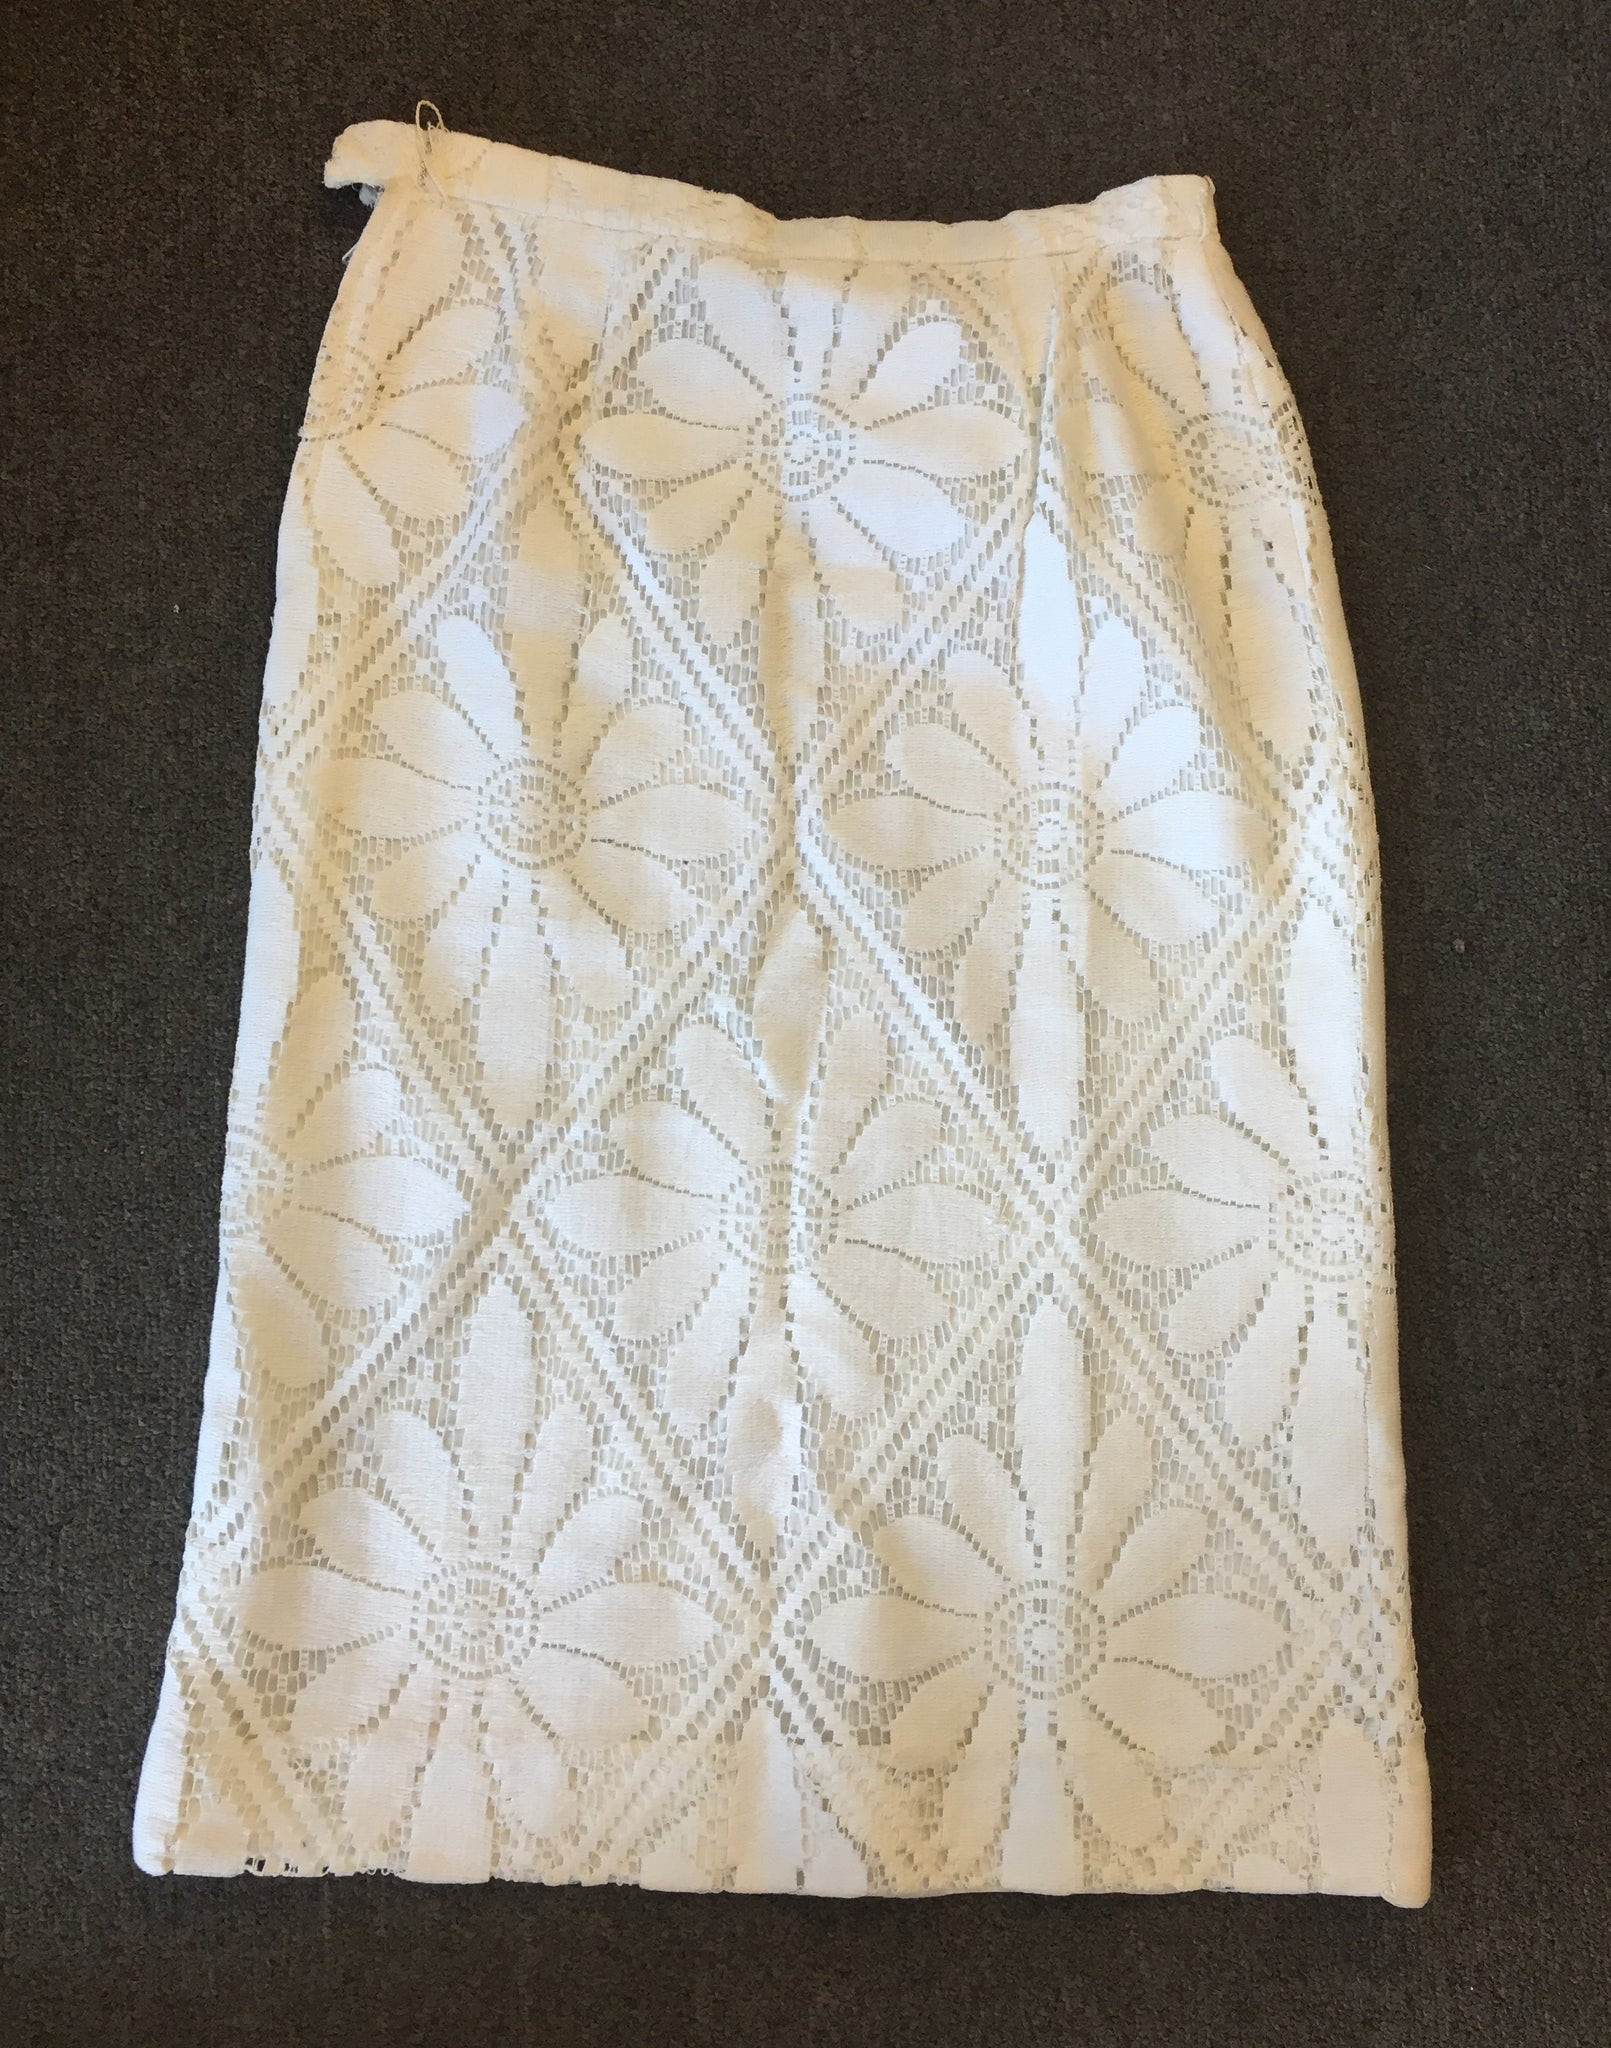 Vintage 1960's '70's White Wiggle Skirt Floral Patterned Overlay Mini